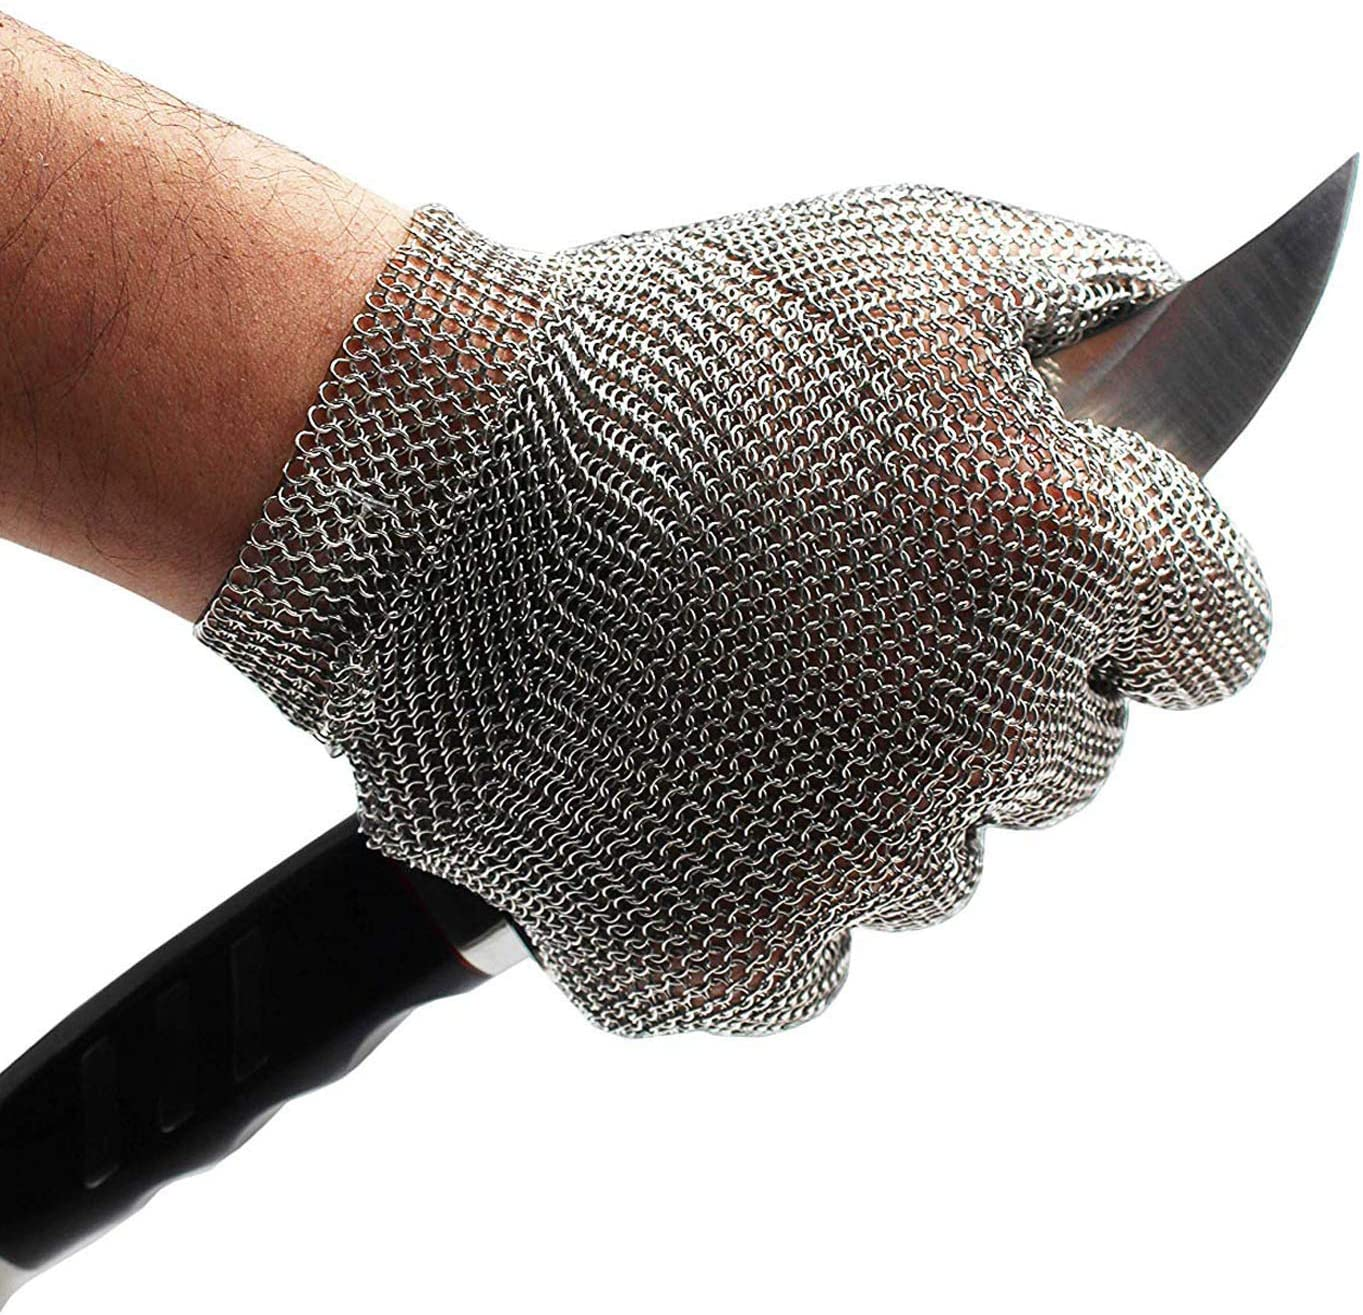 Schwer Stainless Steel Metal Mesh Chainmail Cut Resistant Glove for Food Handling, Meat Cutting Butchers Slicing Chopping Restaurant Work Safety(XL)